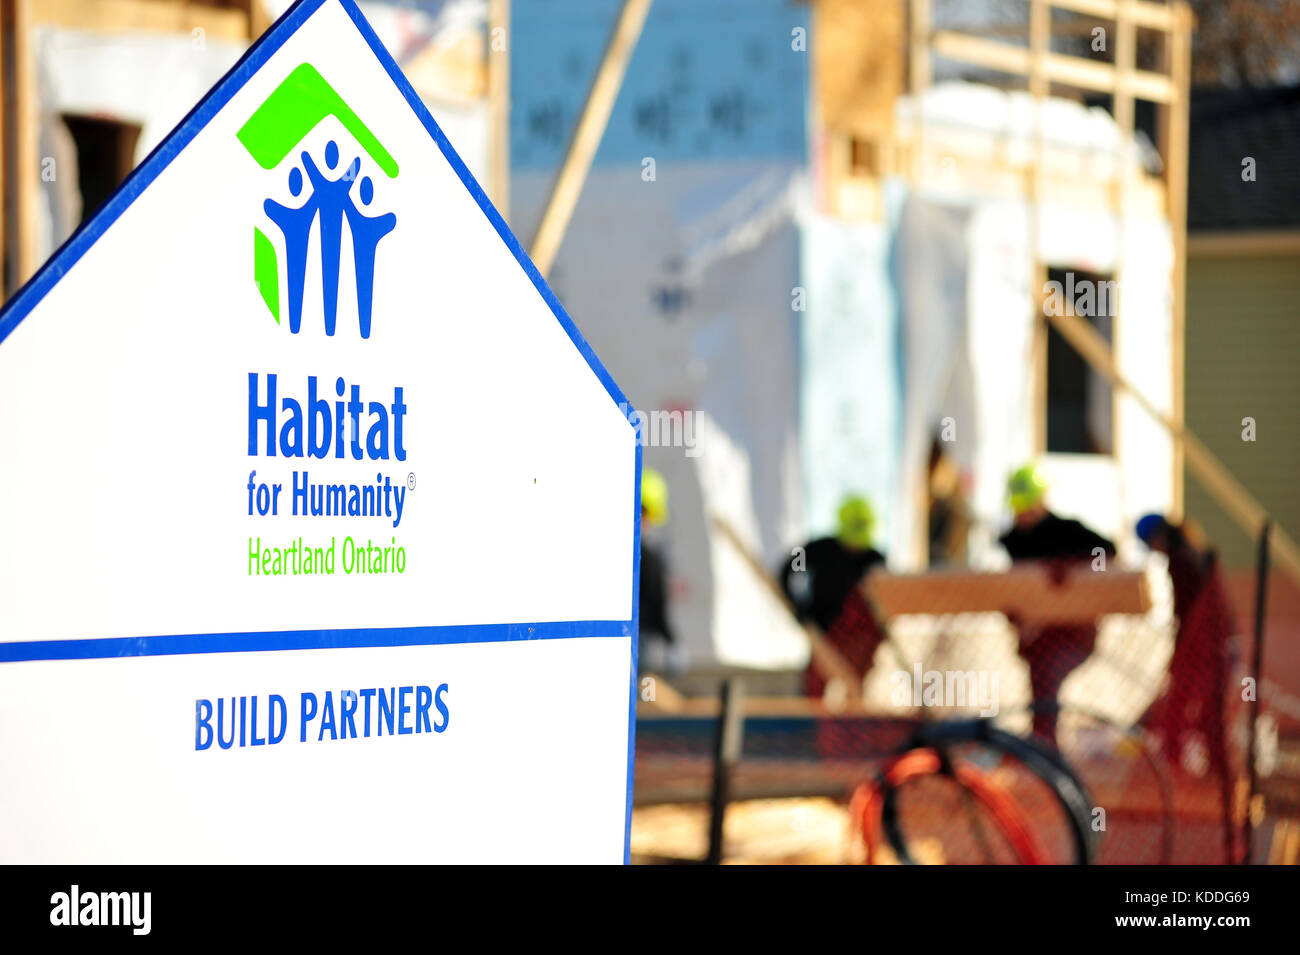 A Habitat for Humanity sign outside a build site in Ontario - Stock Image